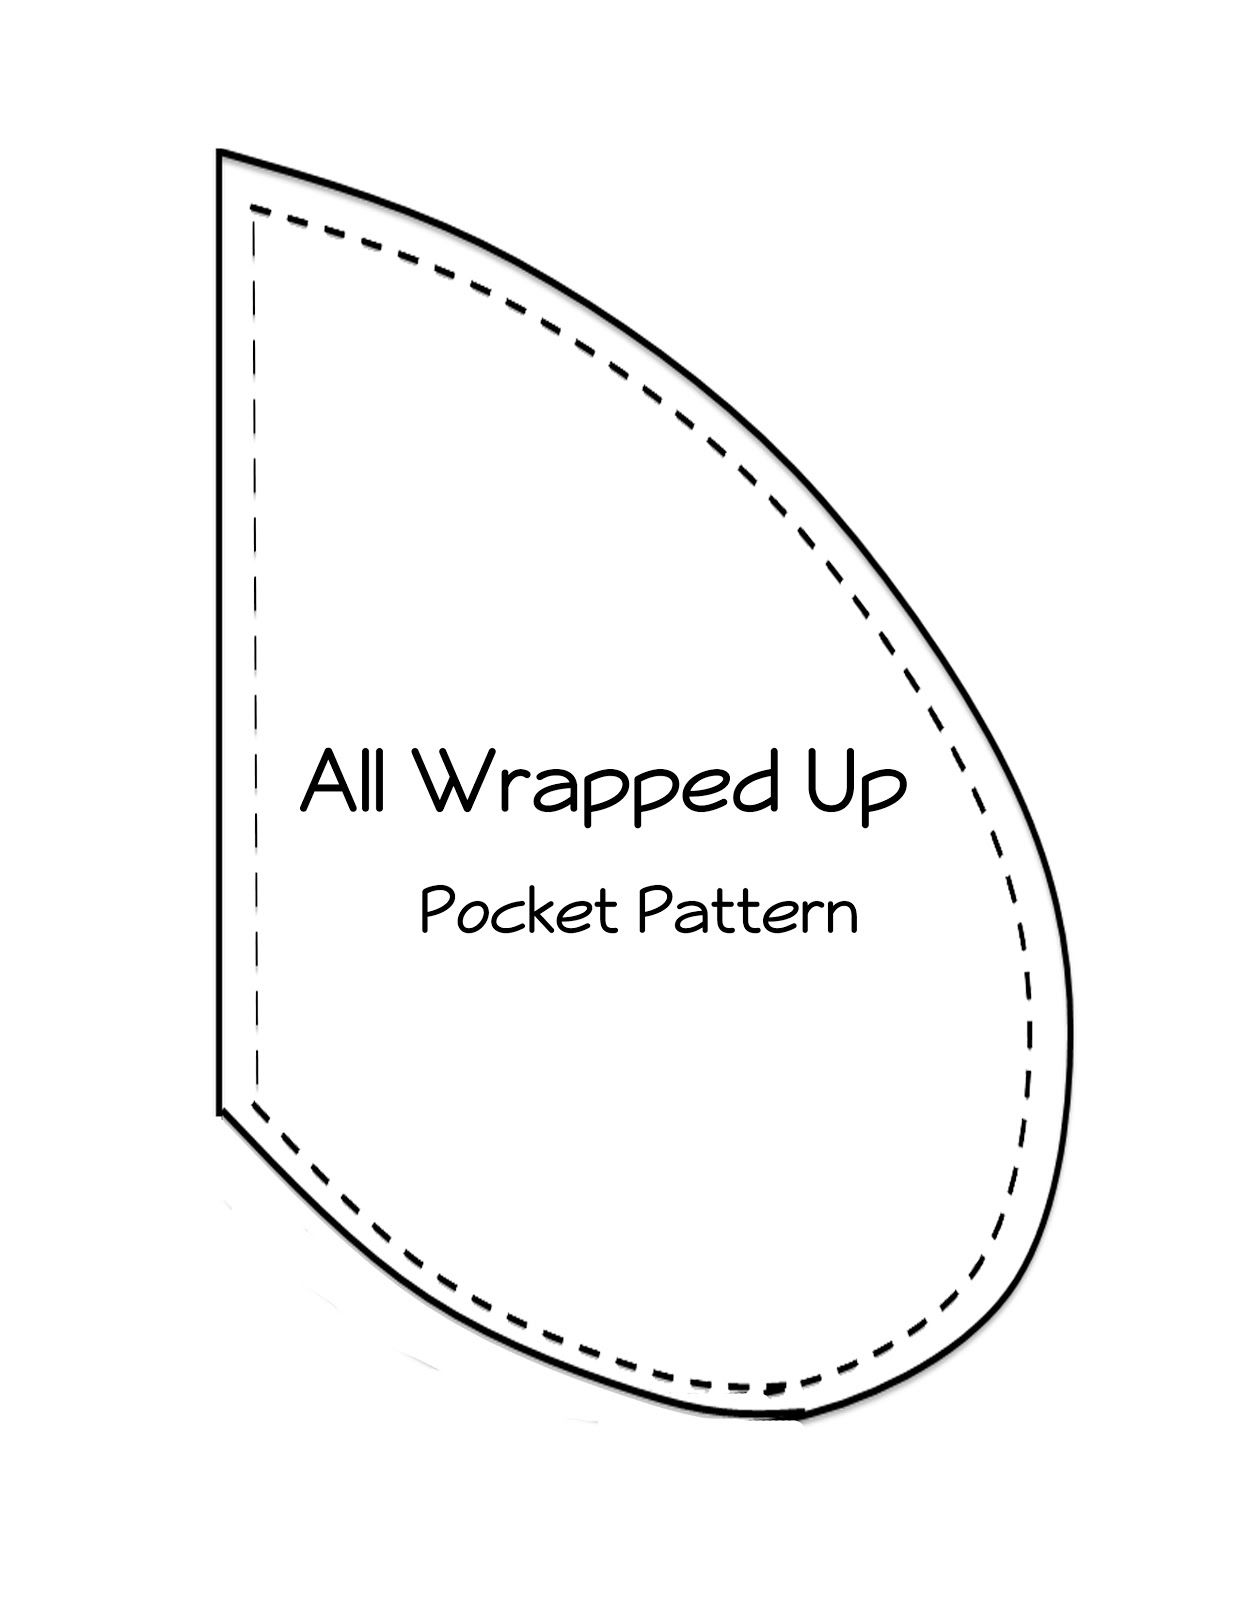 picture about Pocket Pattern Printable called pocket habit printable - Google Appear Toward Sew or Not in the direction of